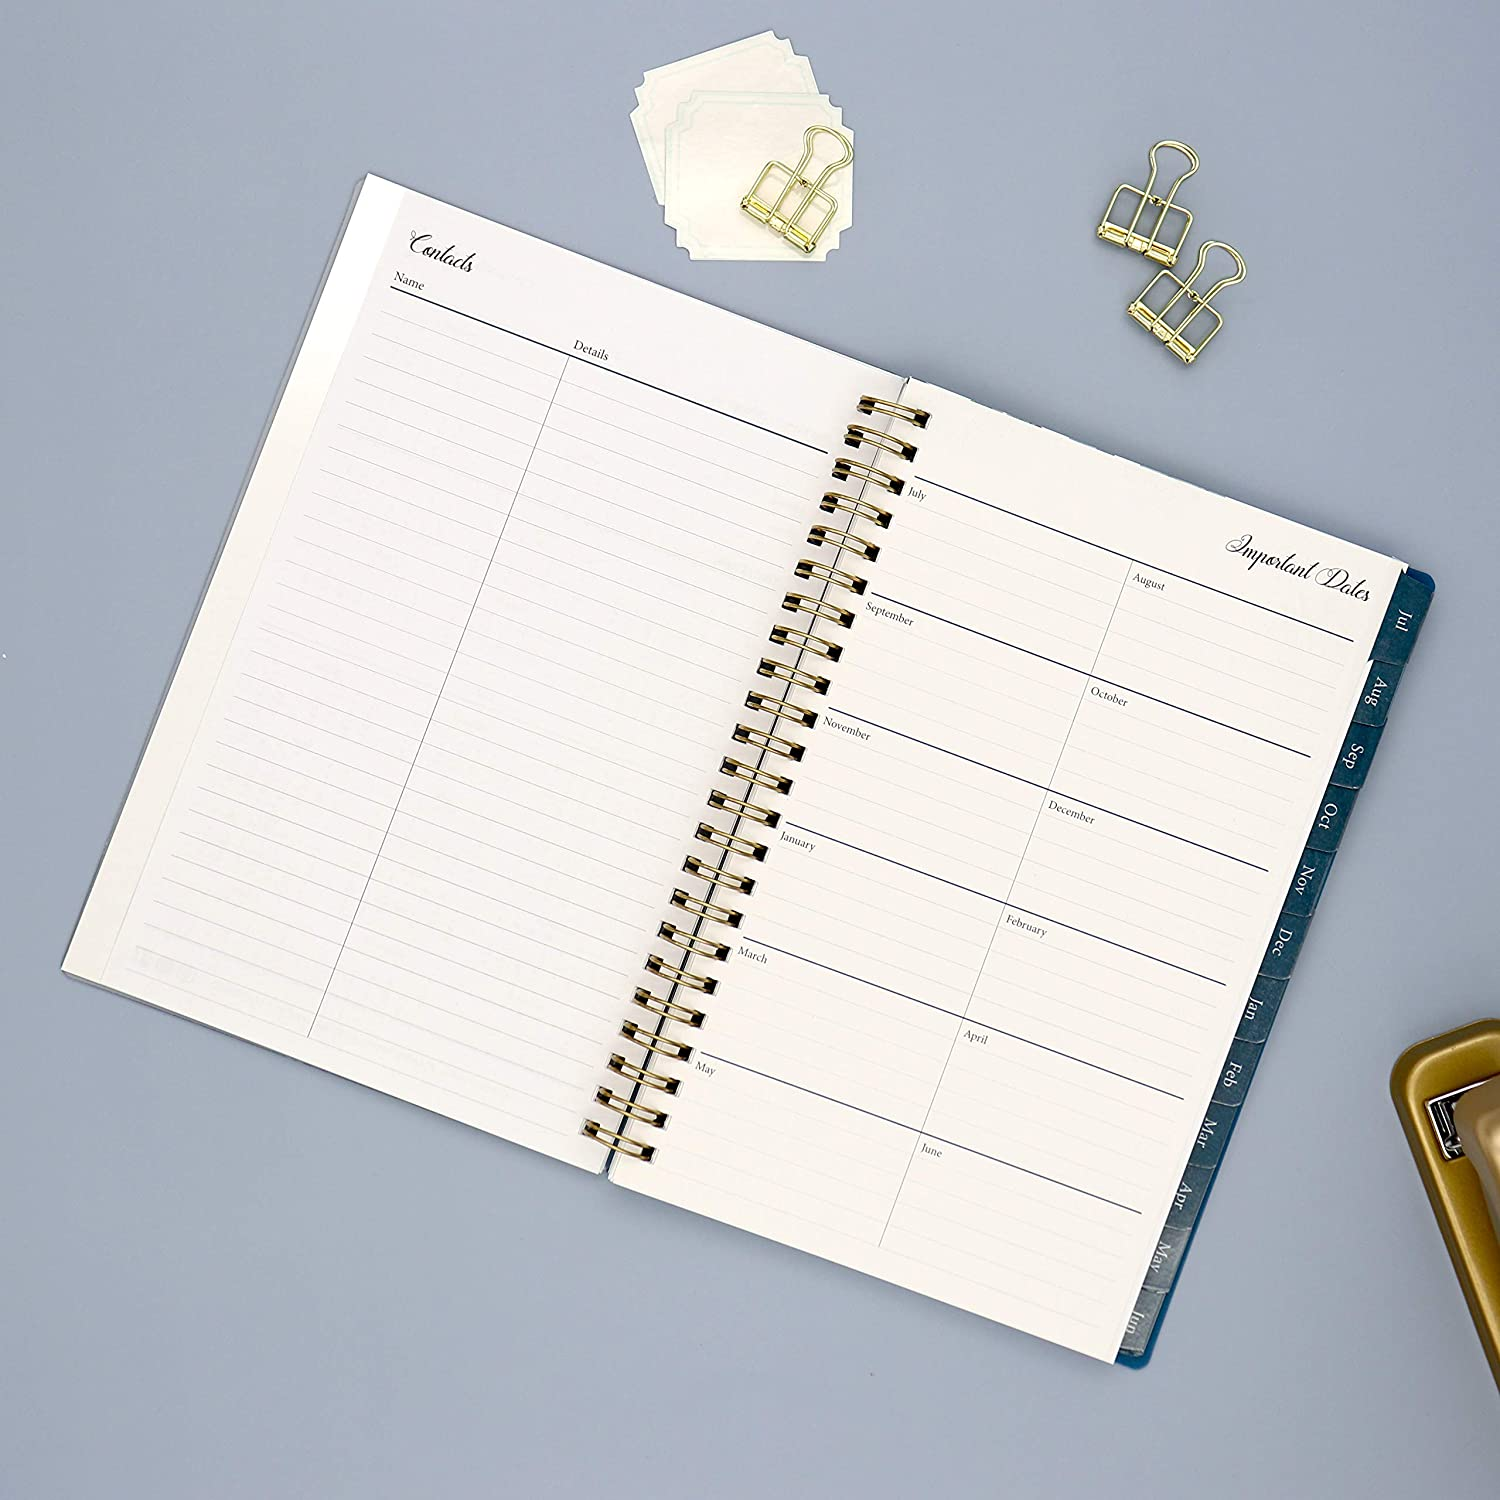 "Blue Sky 2020-2021 Academic Year Weekly & Monthly Planner, Flexible Cover, Twin-Wire Binding, 5"" x 8"", Bakah Blue : Office Products"